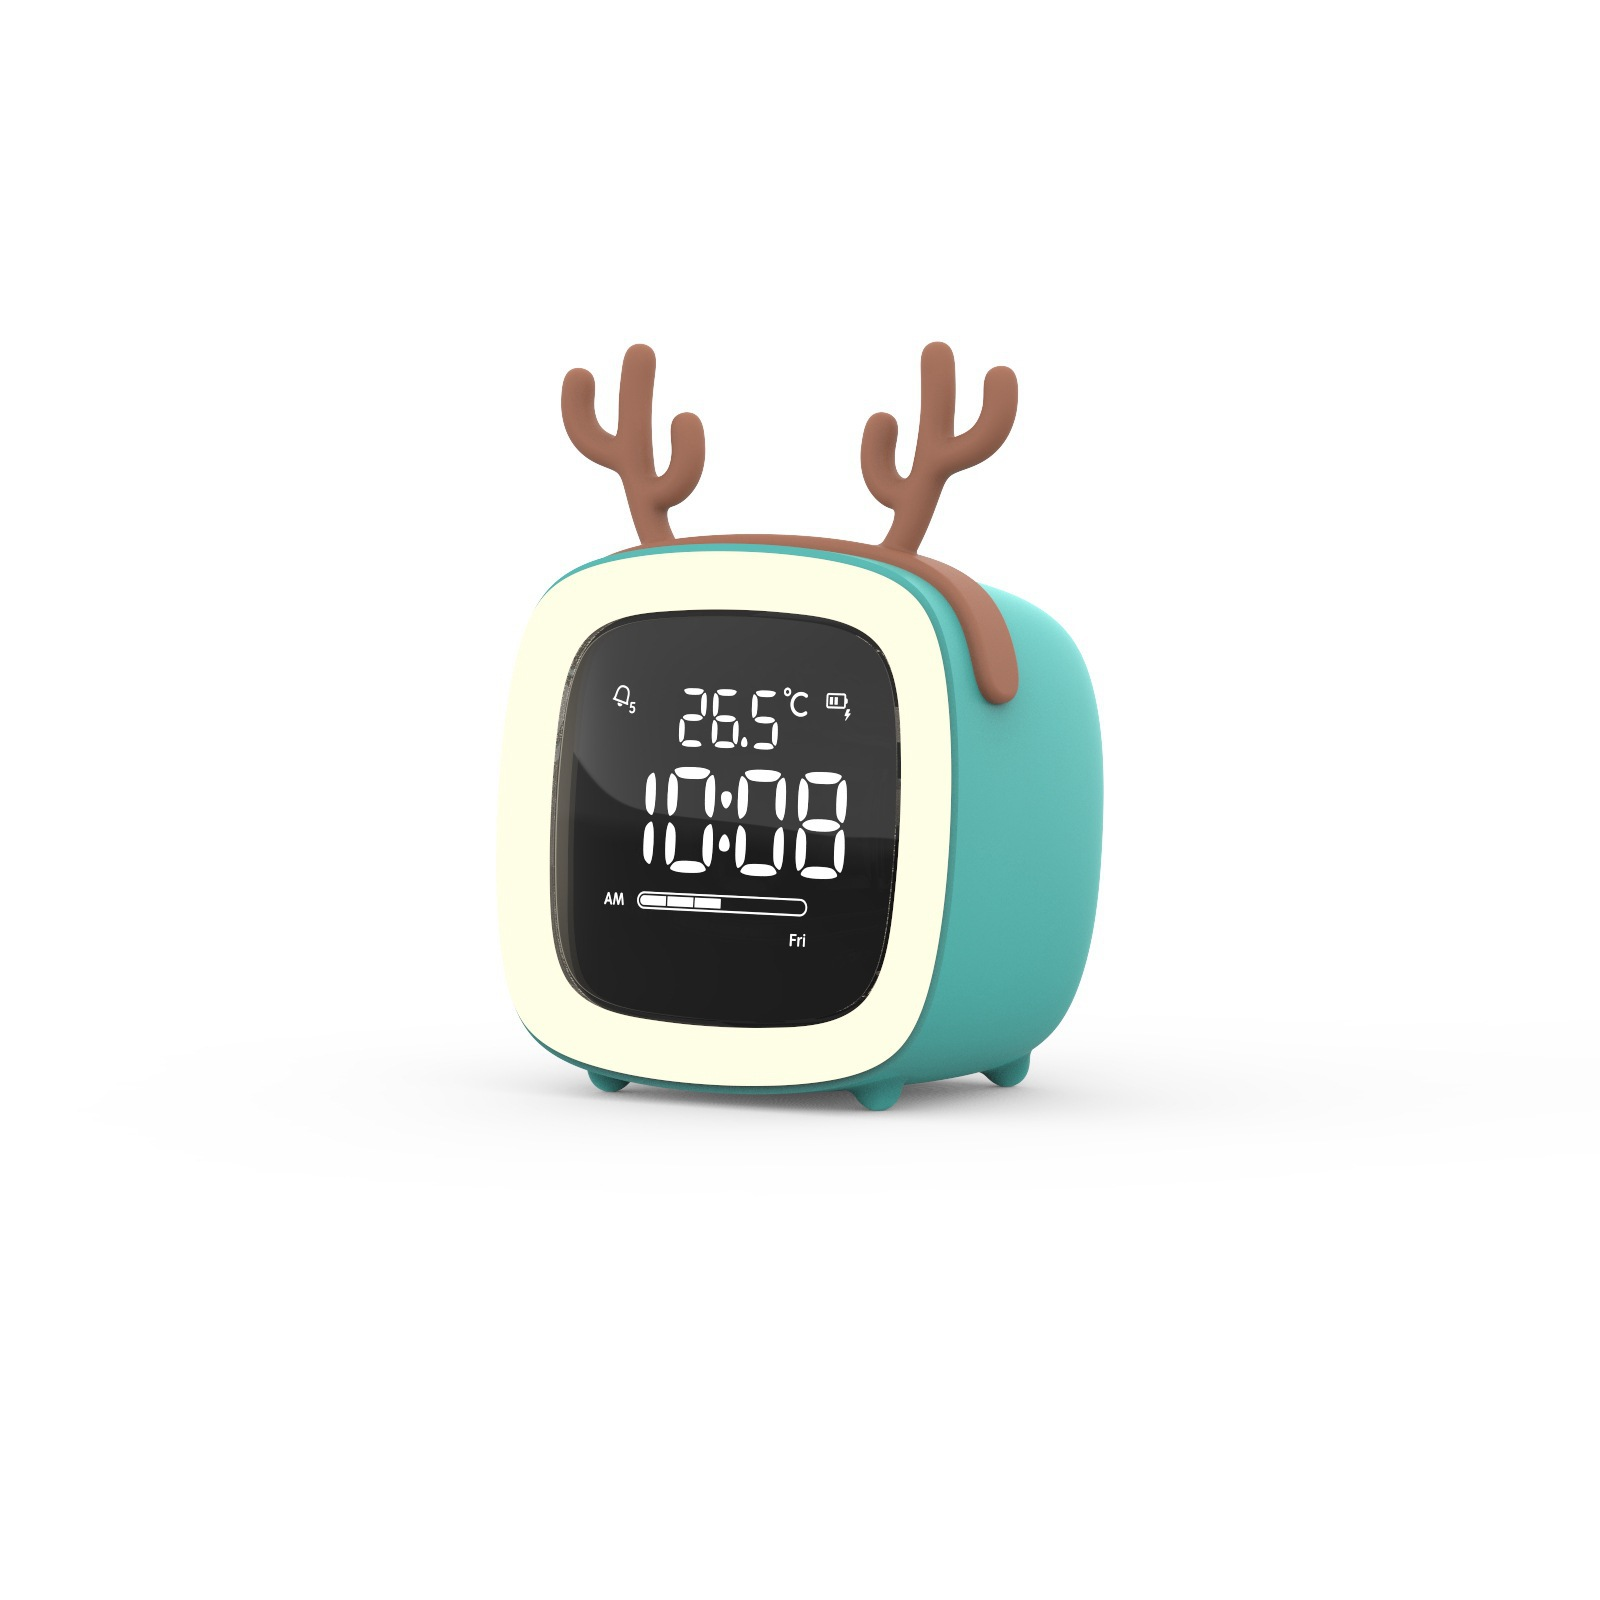 Kids Alarm Clock Cute Tv Night Light Alarm Clock For Children Desk Clock Rechargeable Battery Operated Blue antlers